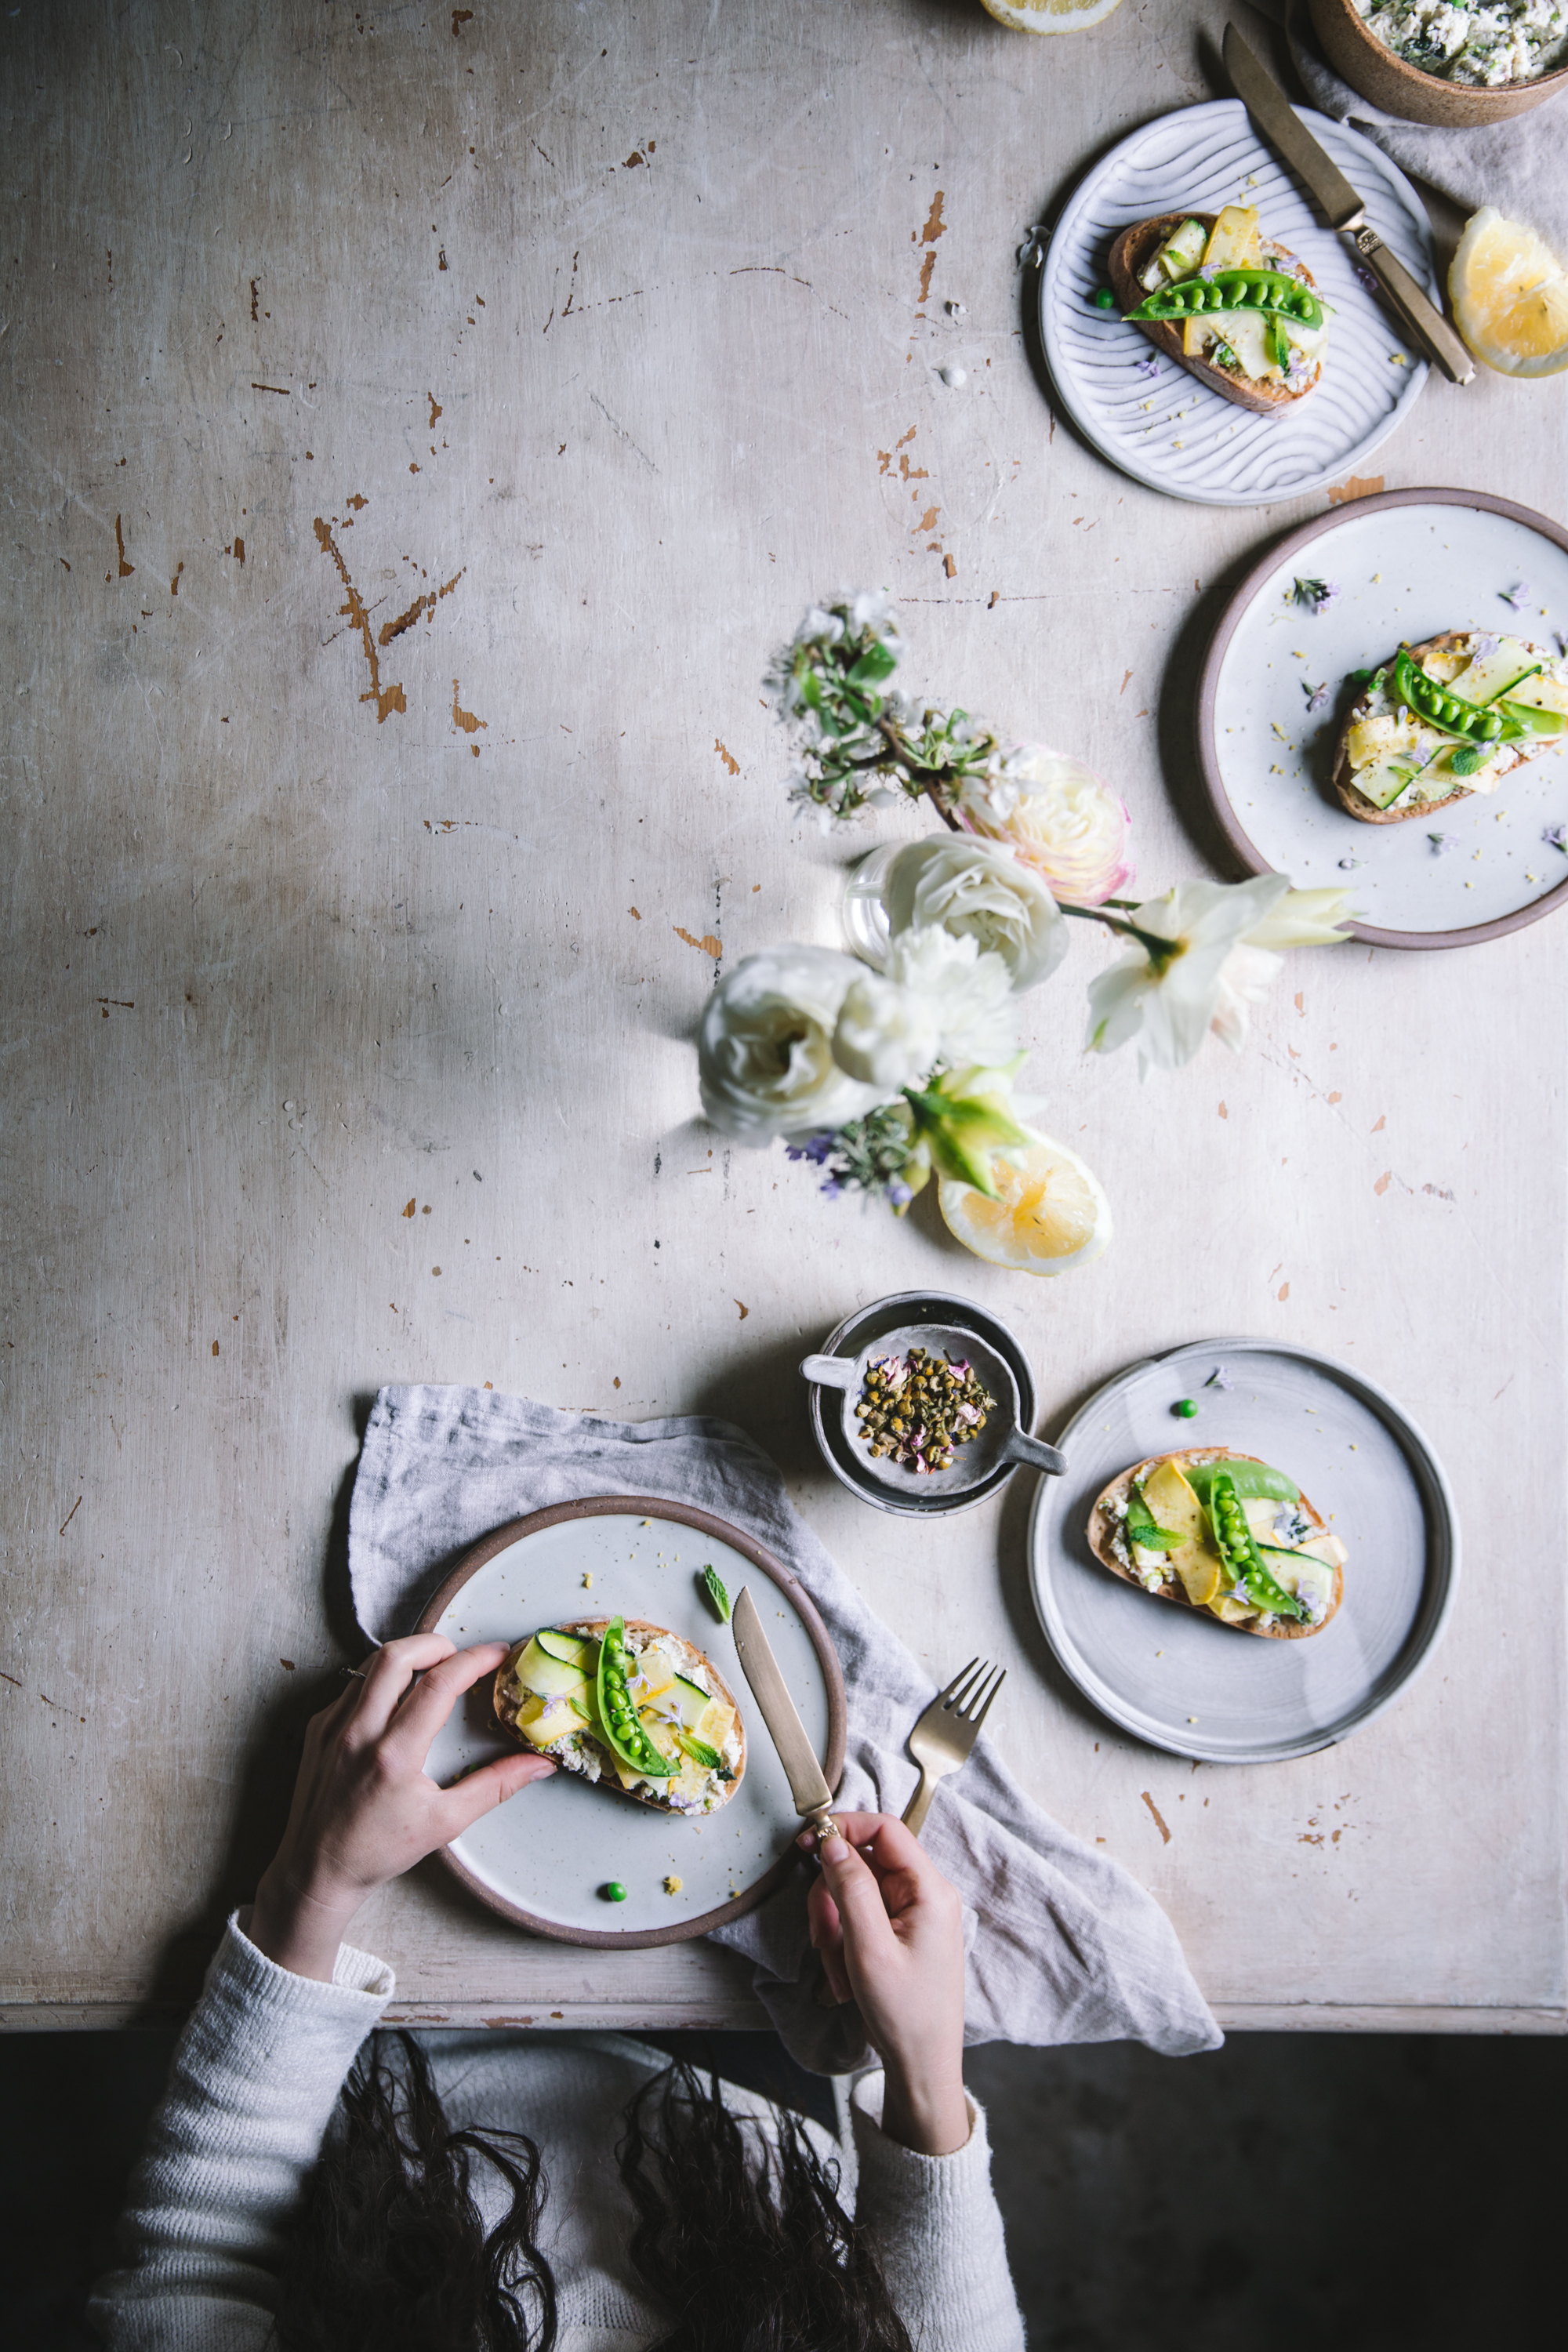 Mint and pea ricotta toasts for an easy healthy spring breakfast from the Wicked Healthy Cookbook